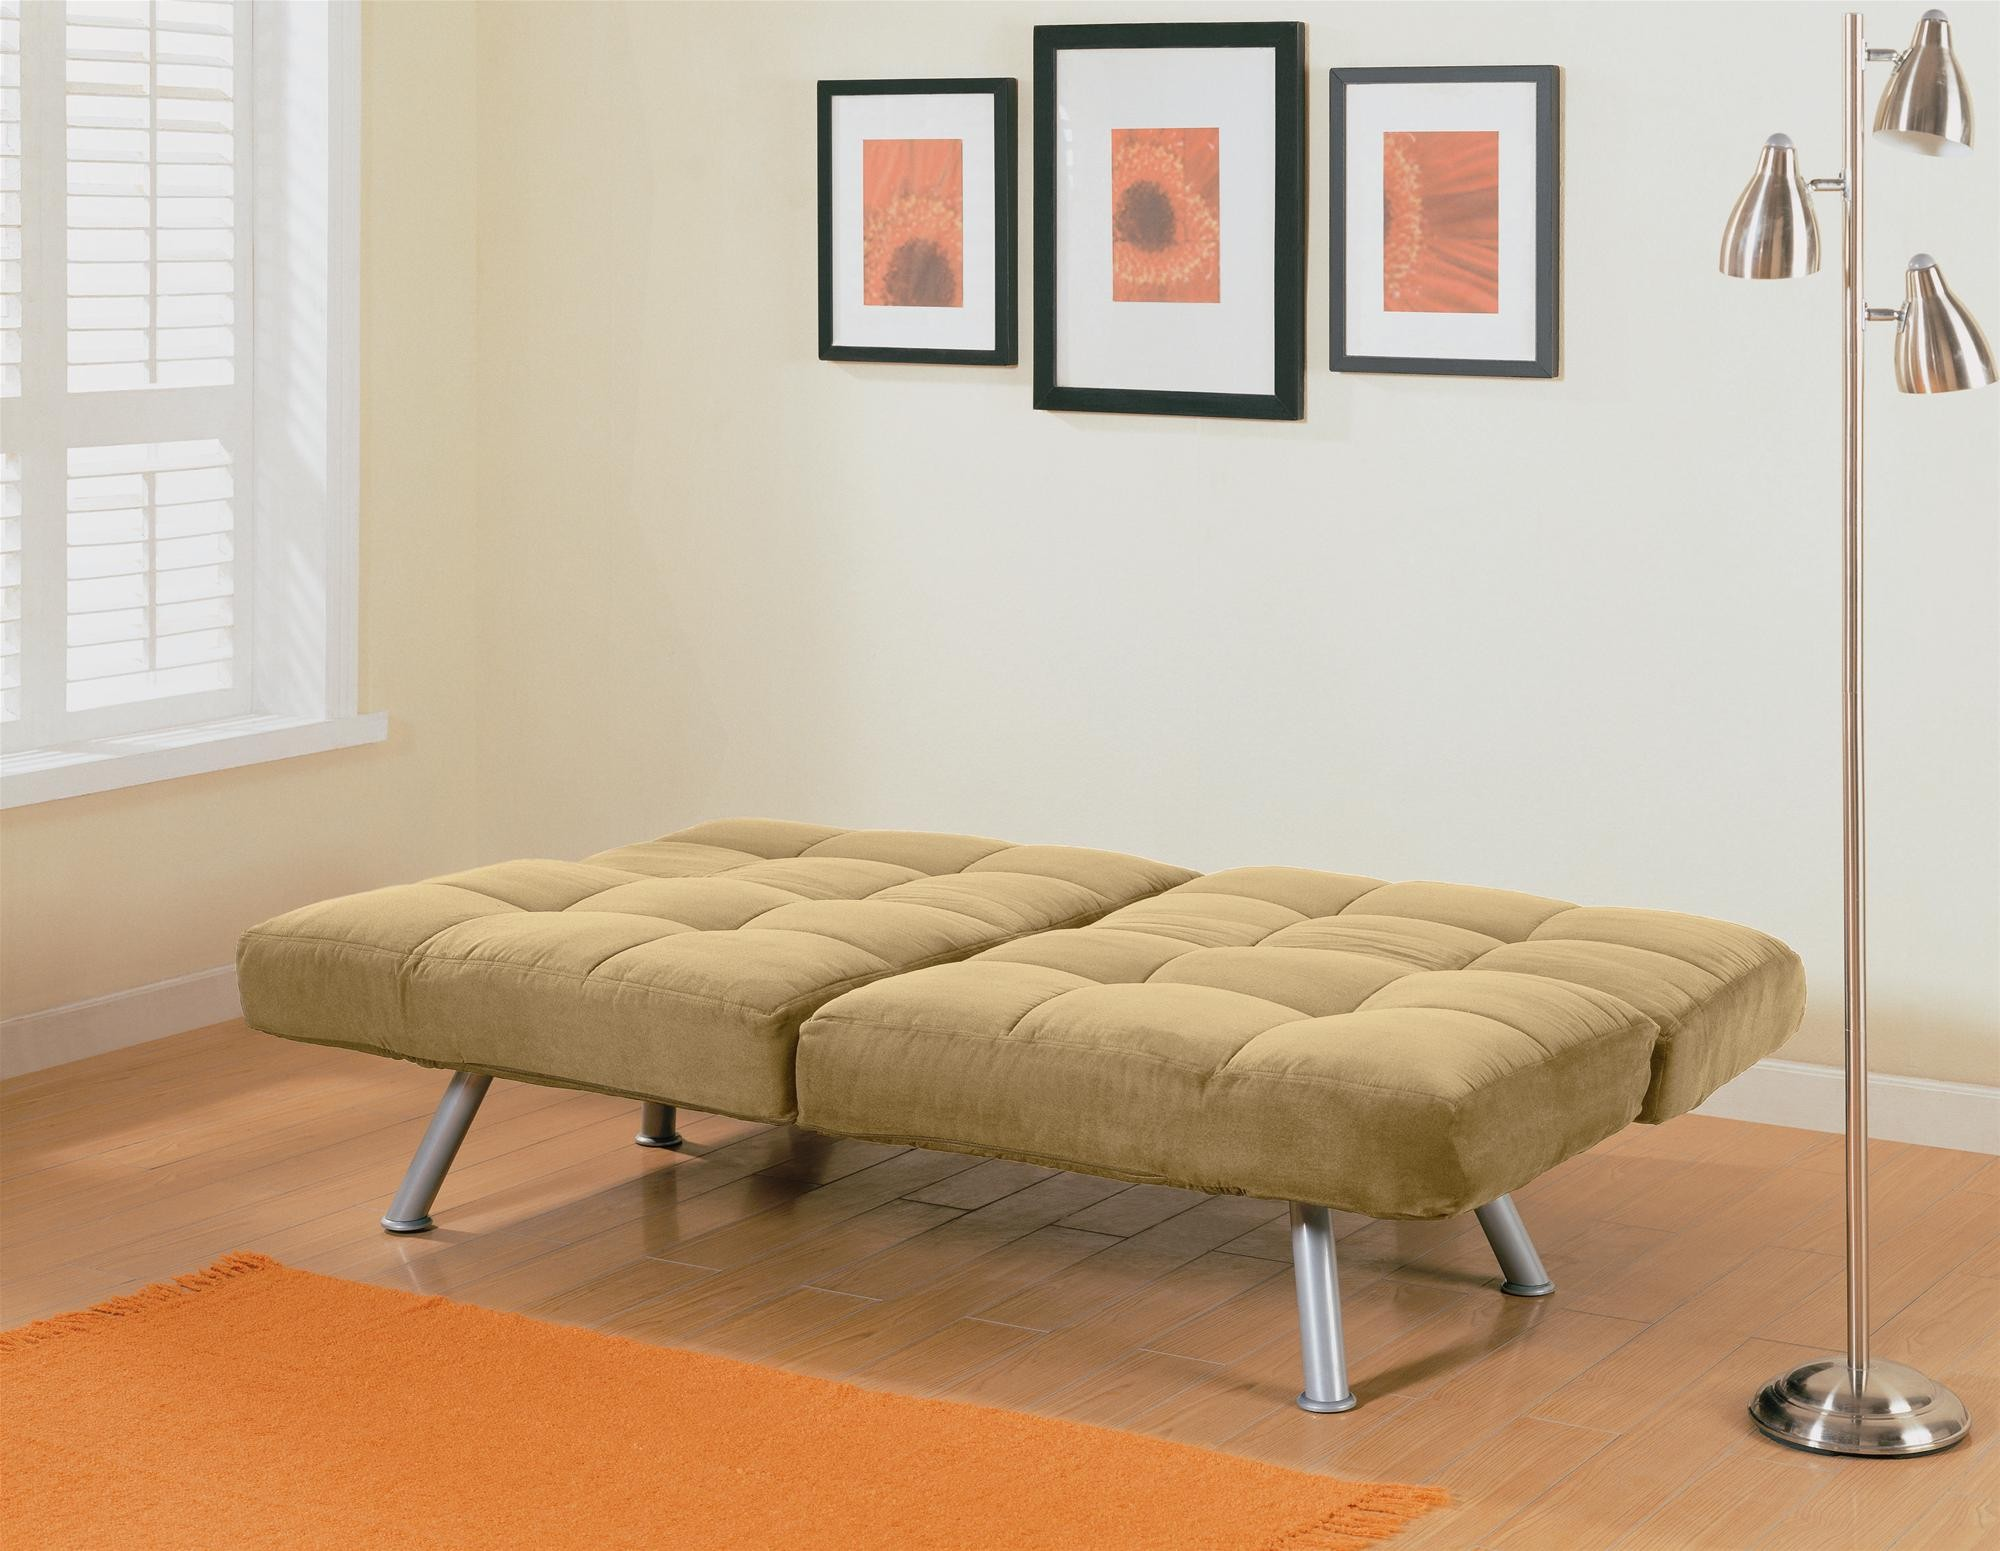 Sofa beds for small spaces also sleeper sofas for small apartement - Sofa sleeper for small spaces concept ...